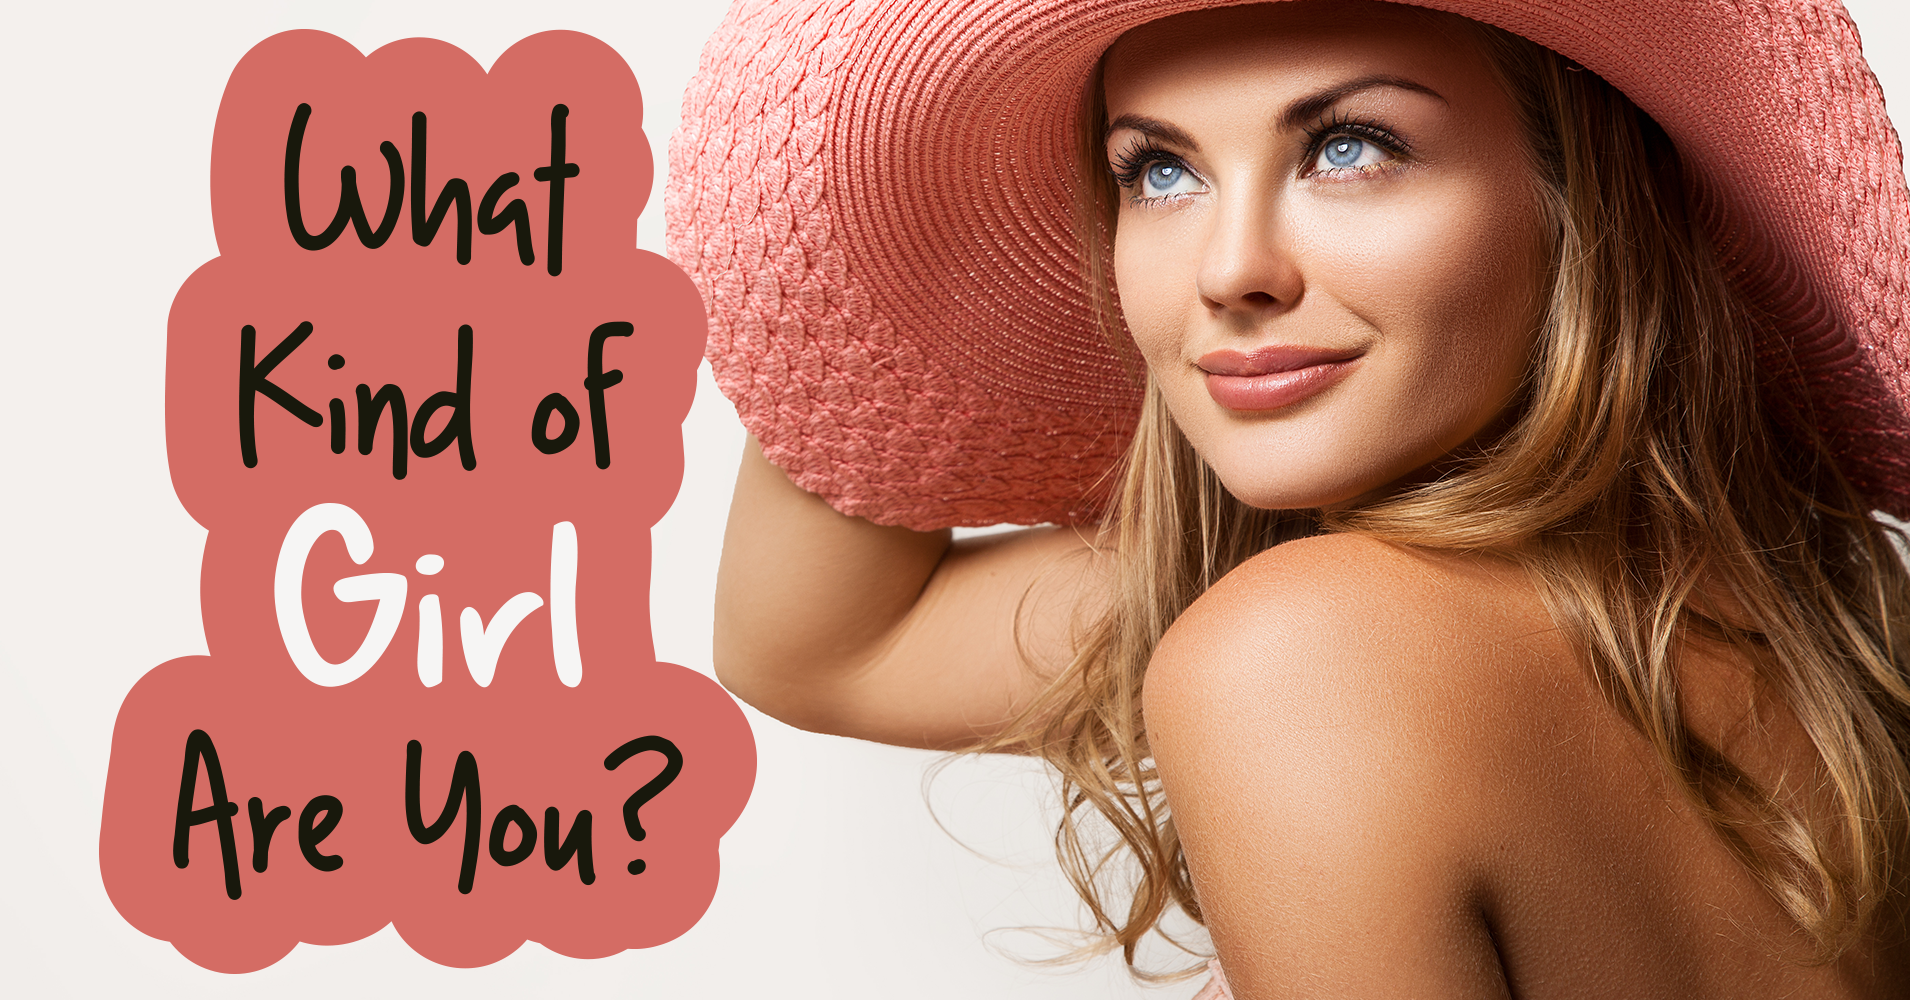 What Kind of Girl Are You? - Quiz